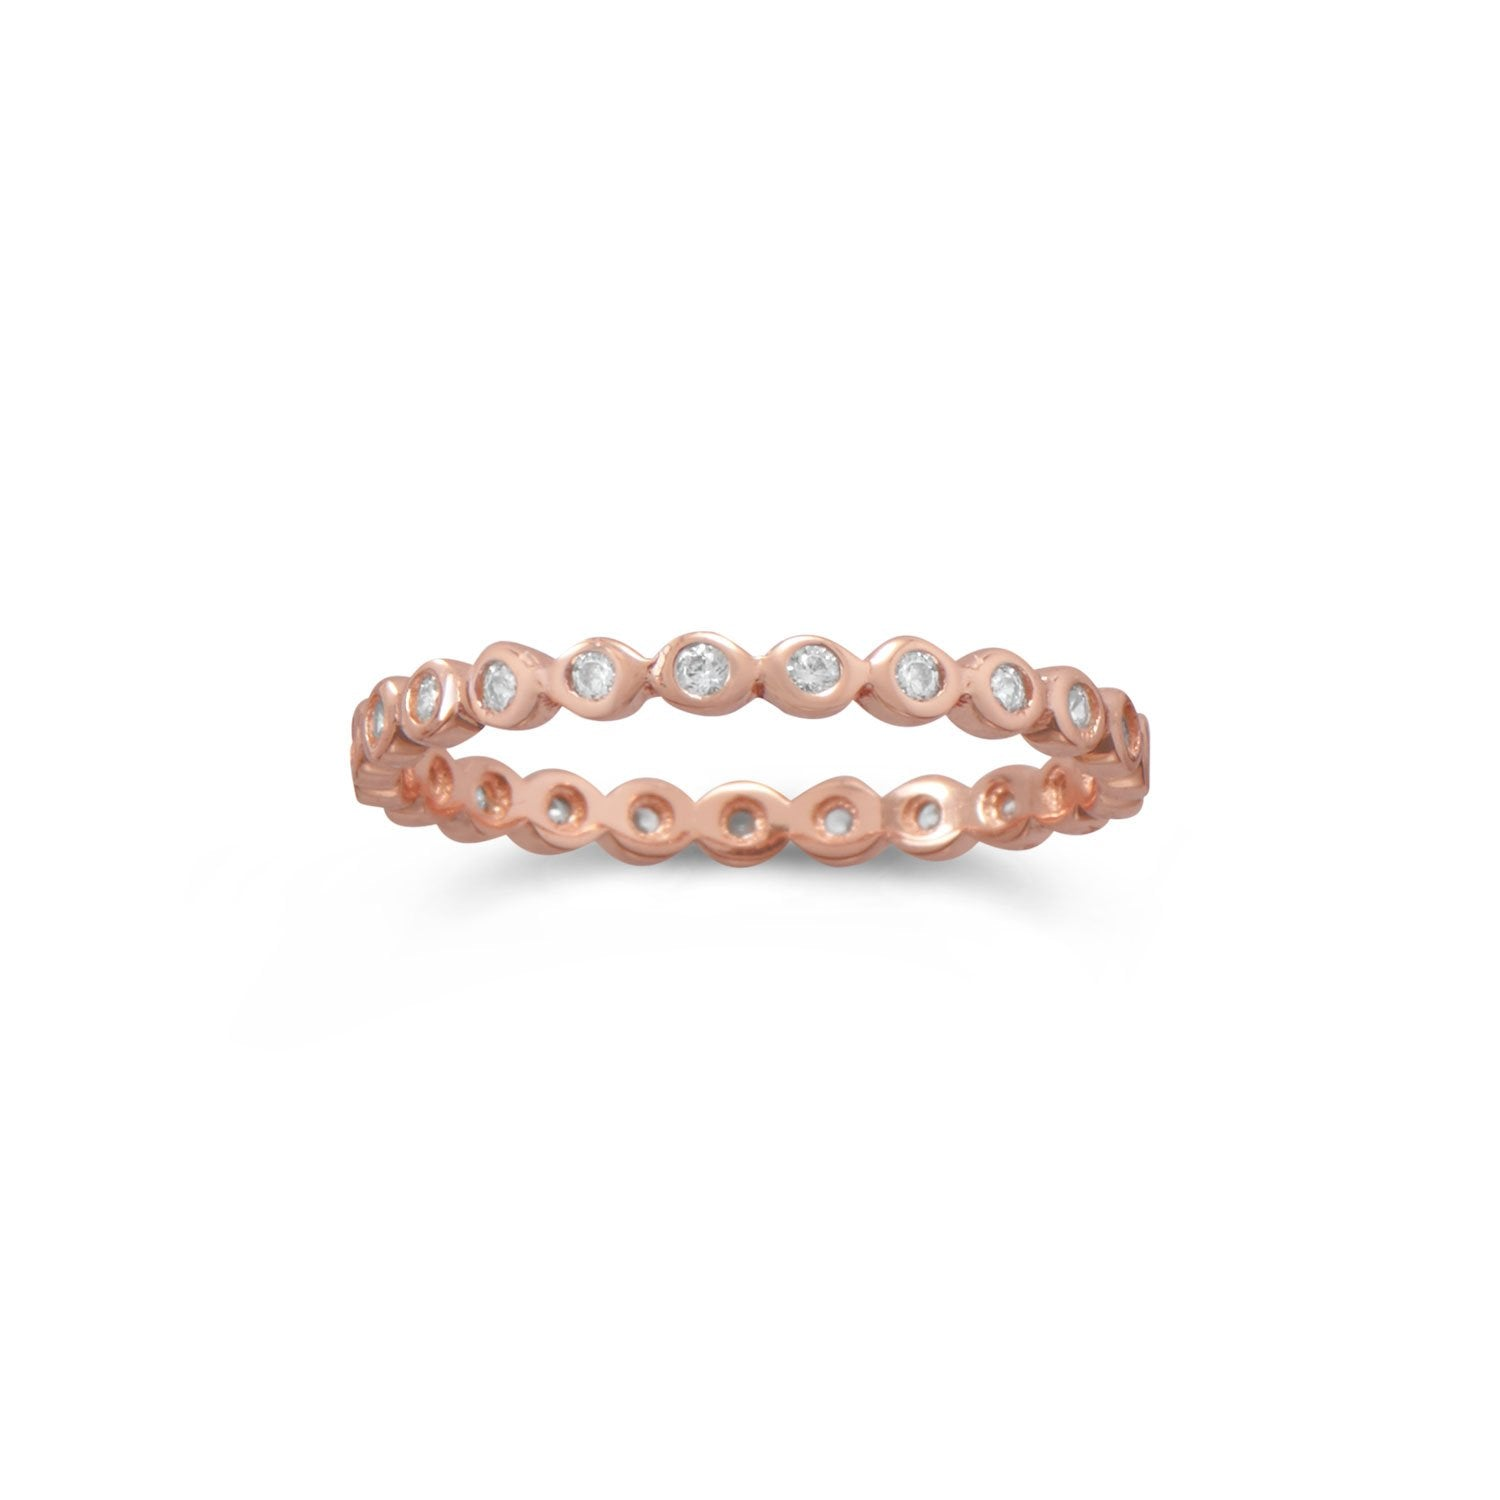 18K Rose Gold Plated Sterling Silver Cz Eternity Band Ring